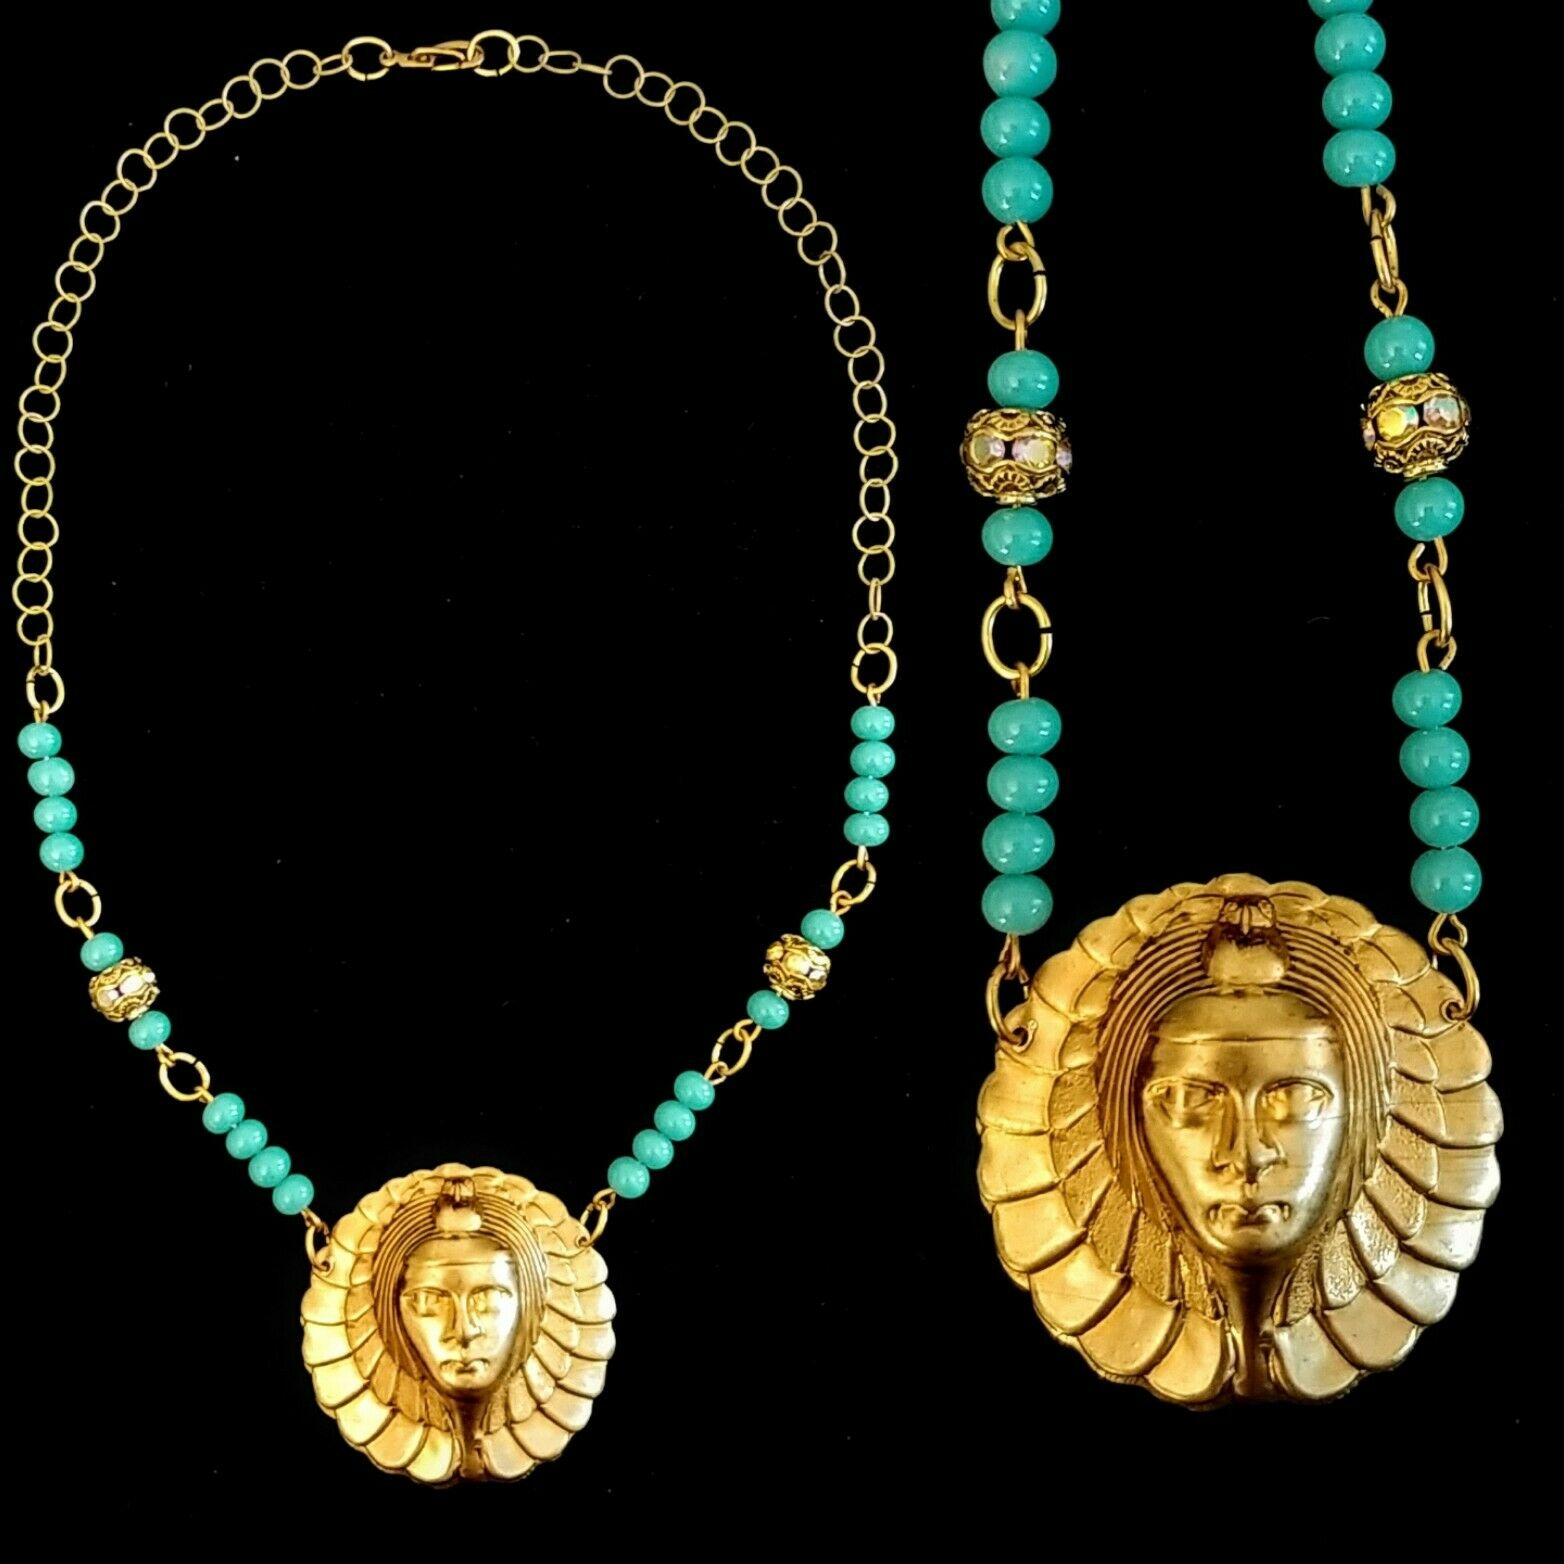 Vintage Egyptian Revival Necklace - image 1